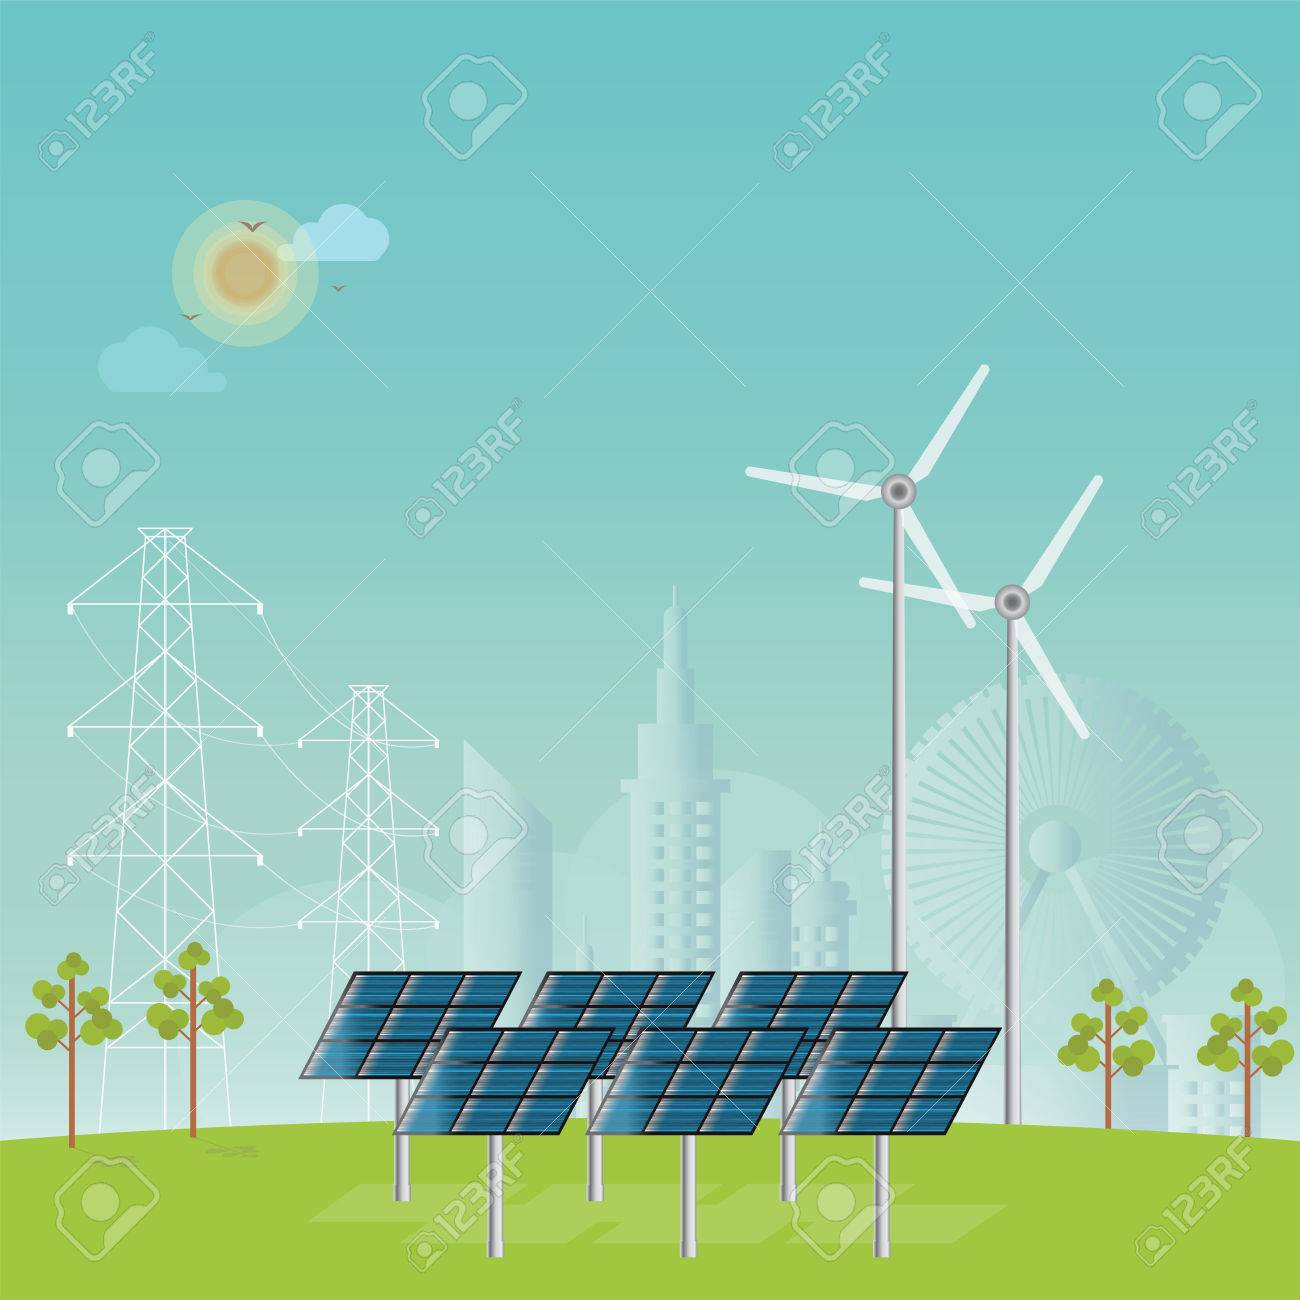 Solar energy panels and wind turbine on city view background,